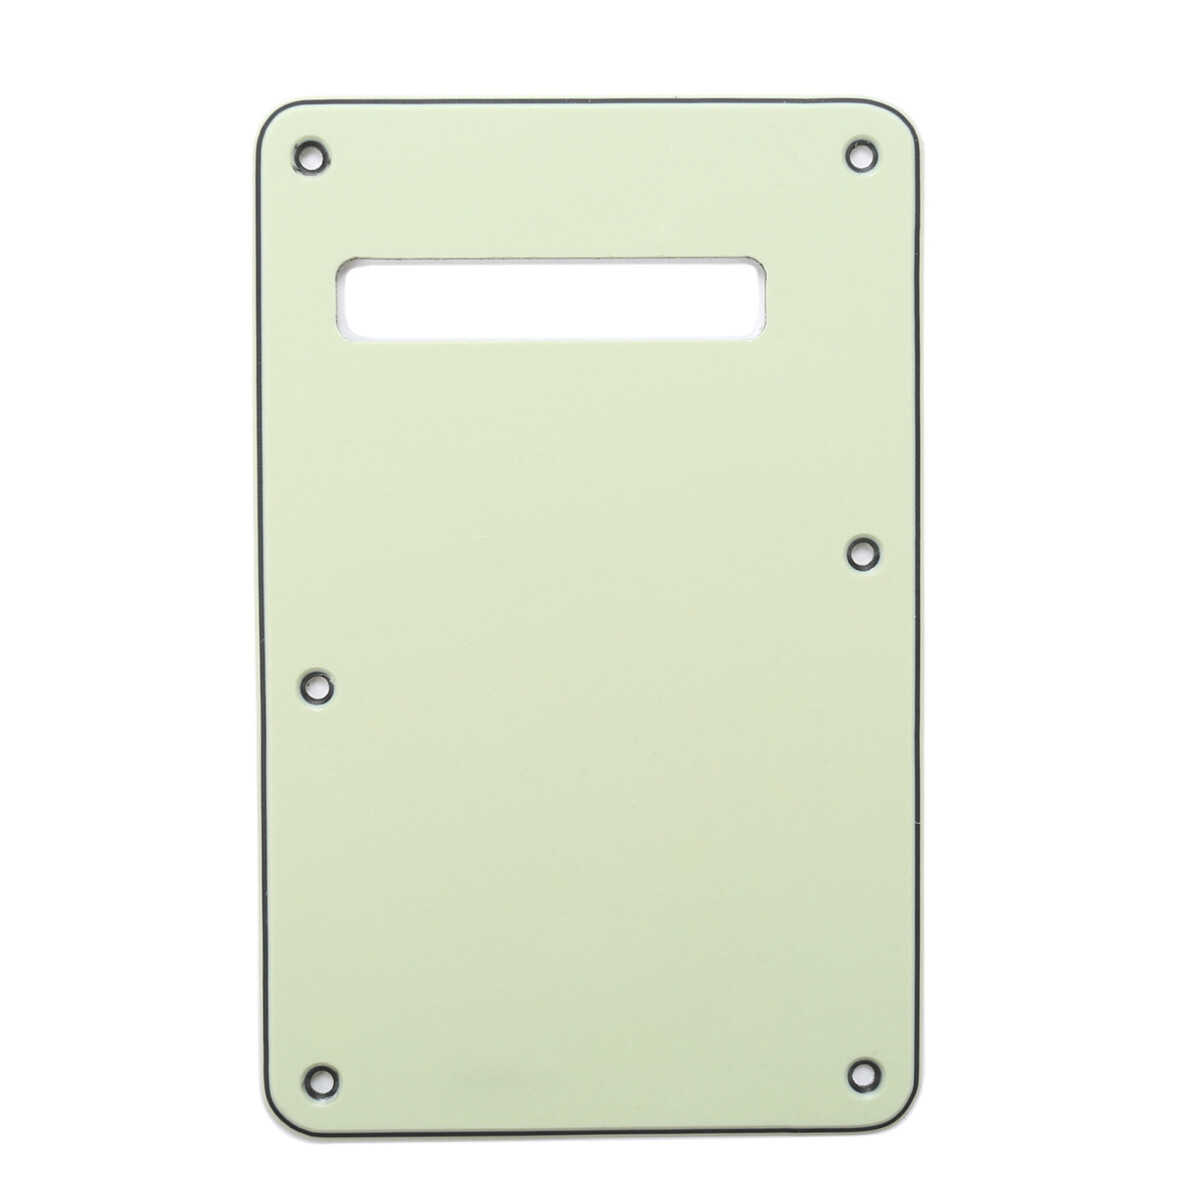 Brio Mint Green Modern Style Back Plate Tremolo Cover 3 ply - US/Mexican Fender®Strat® Fit